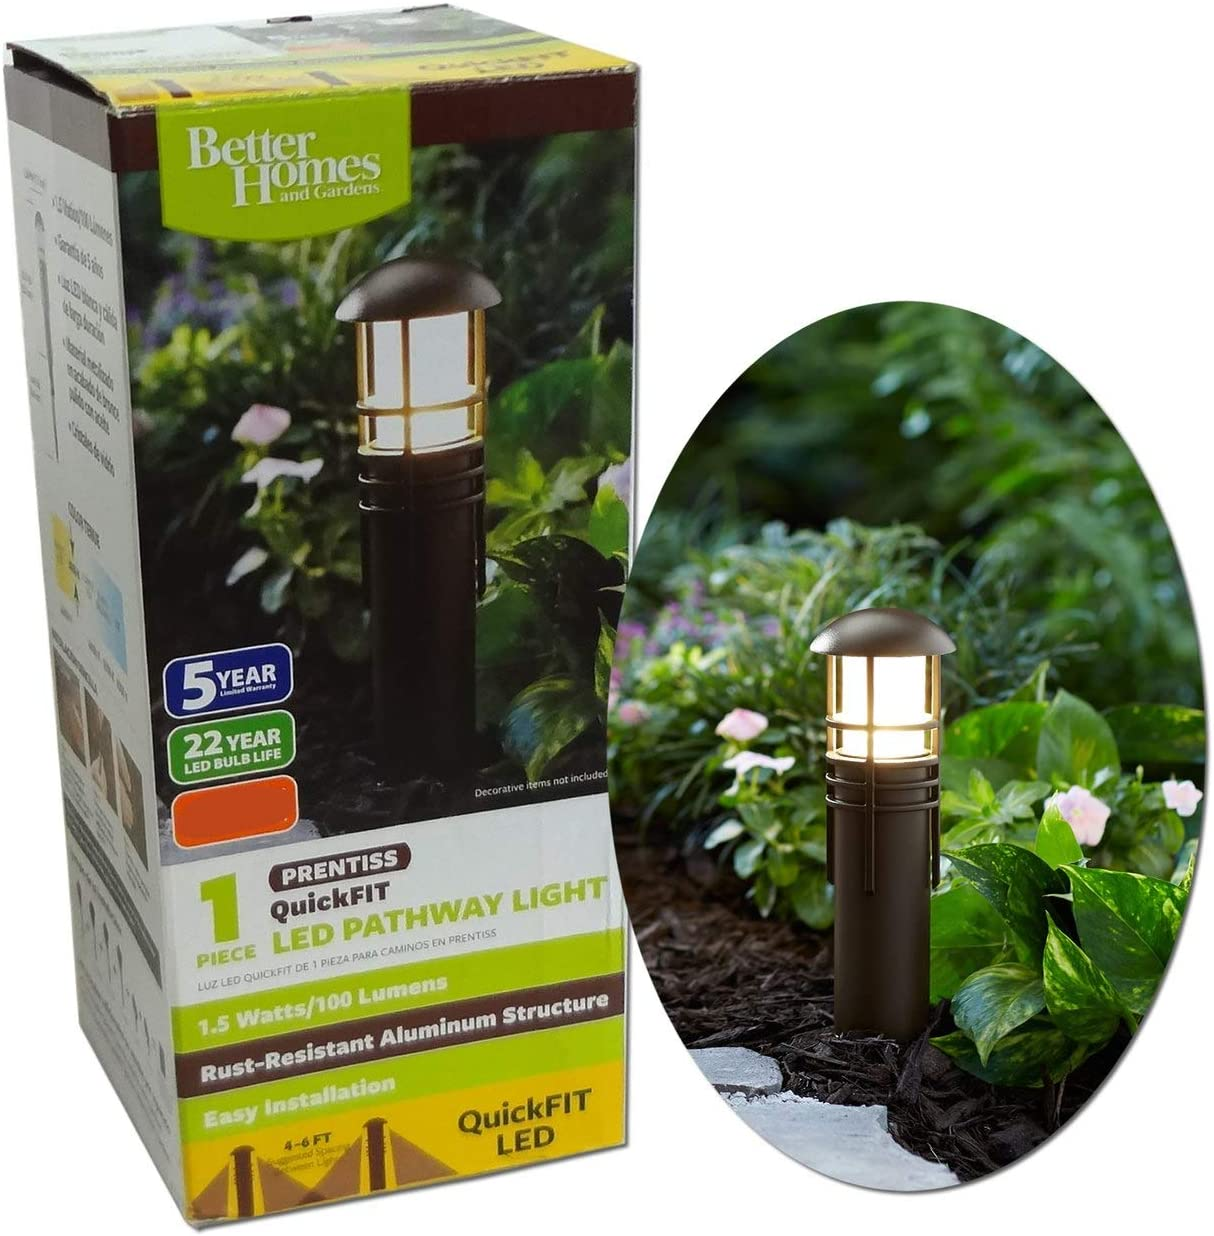 1-Piece Prentiss QuickFIT LED Pathway Light